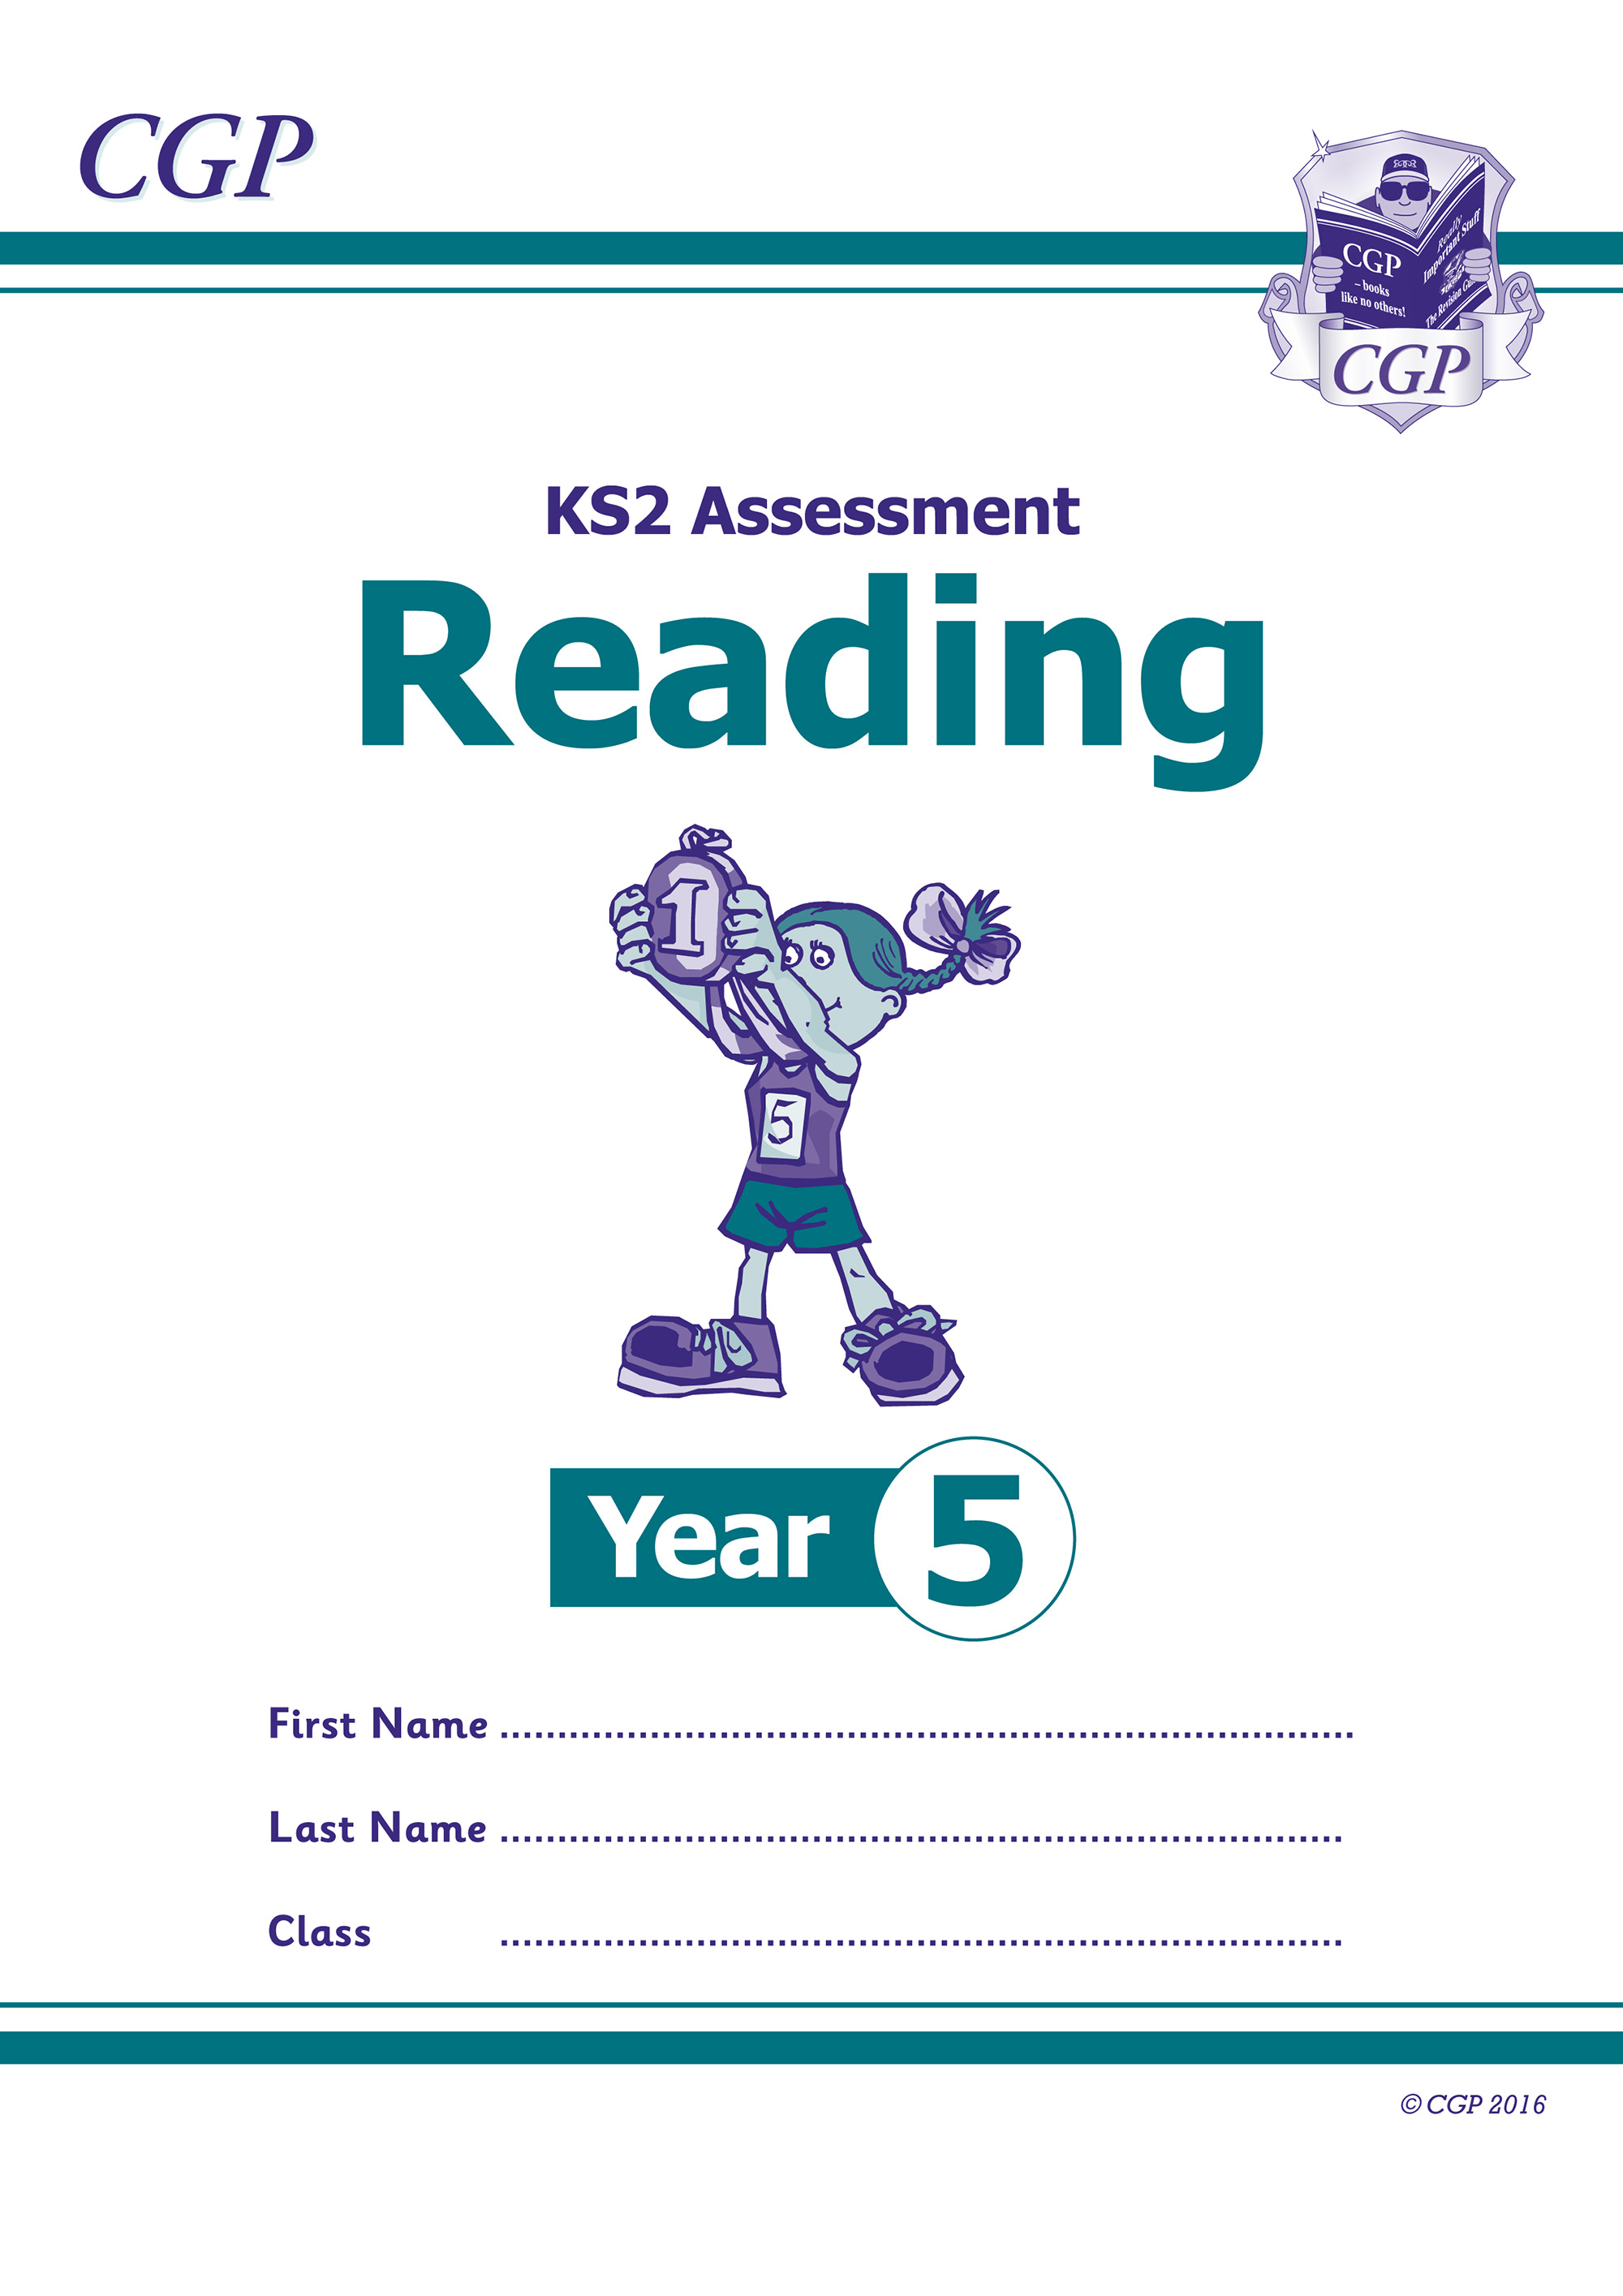 E5RP21 - New KS2 Assessment: Reading - Year 5 Test